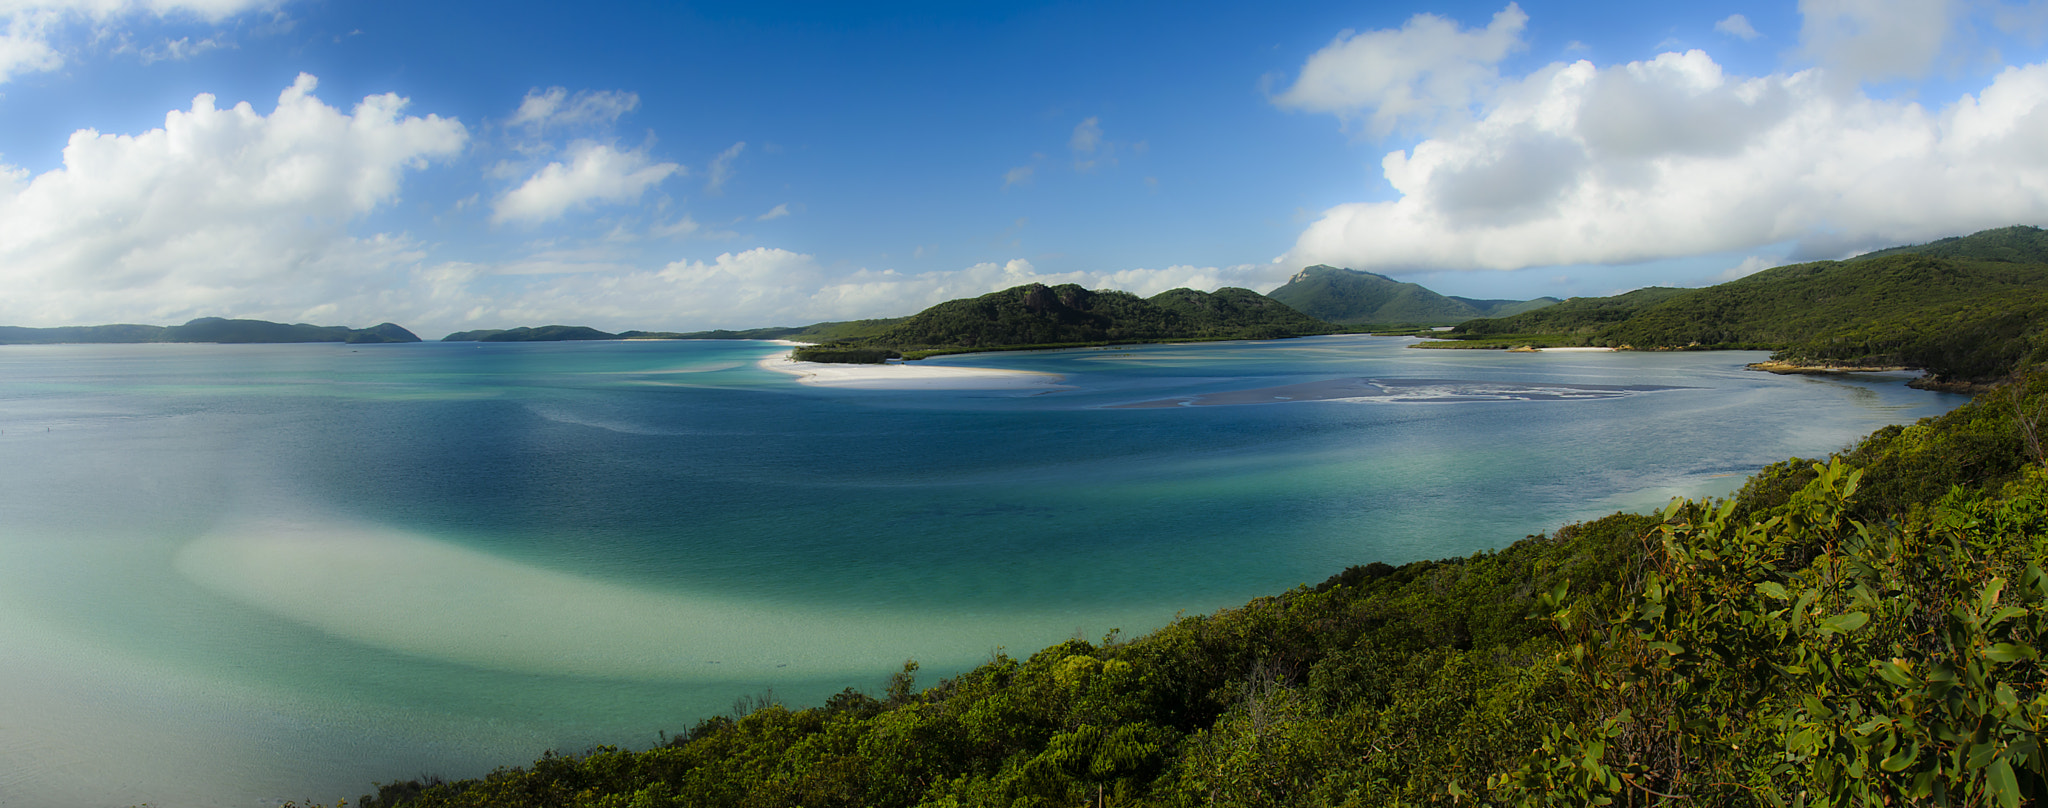 Photograph Hill Inlet - Whitsunday Island by Martijn Barendregt on 500px